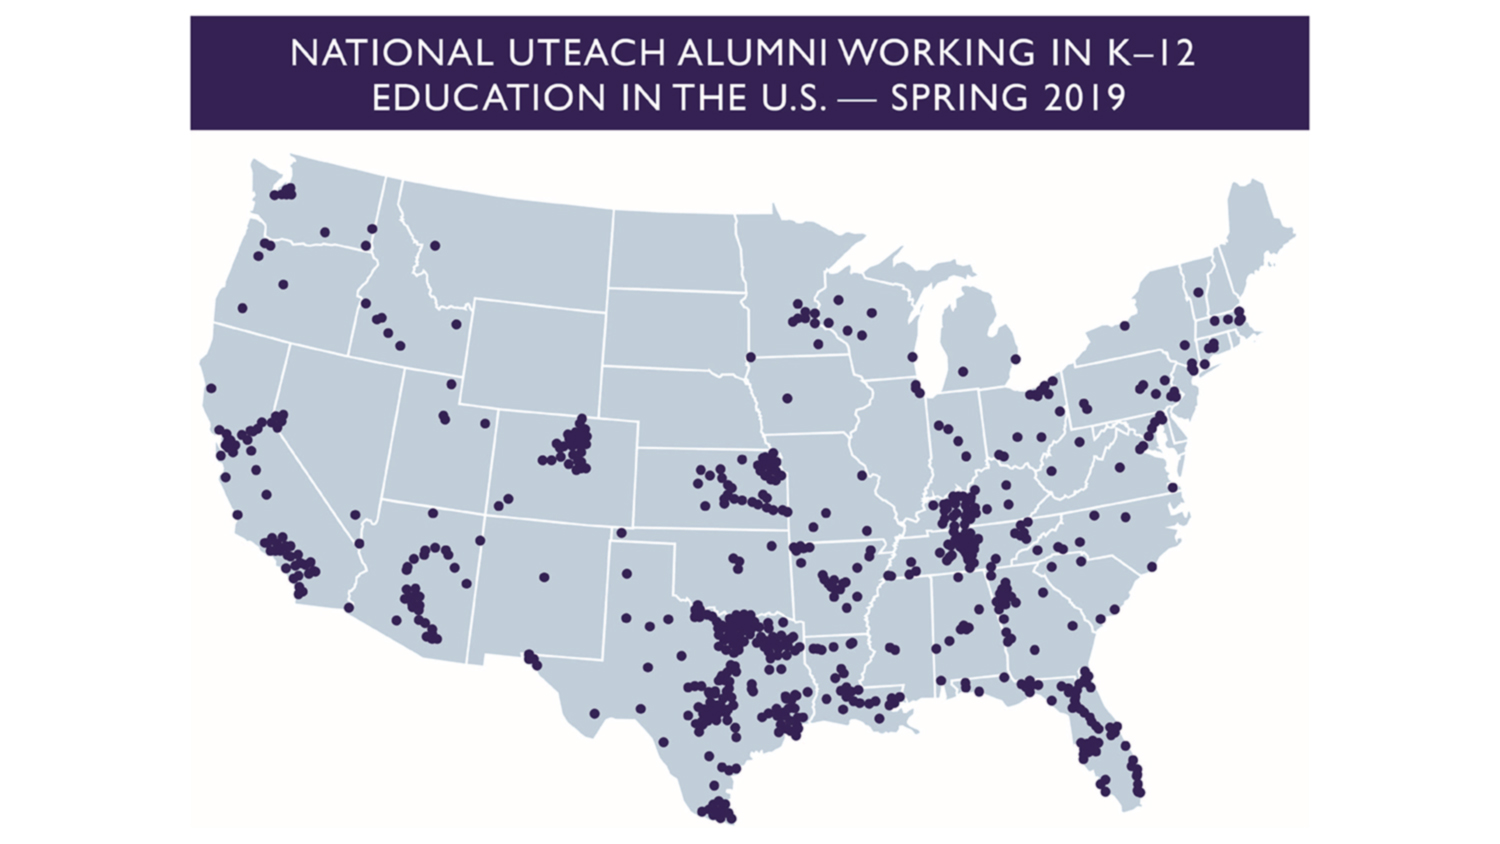 Map of UTeach Alumni working in K-12 education in the United Stated - Spring 2019